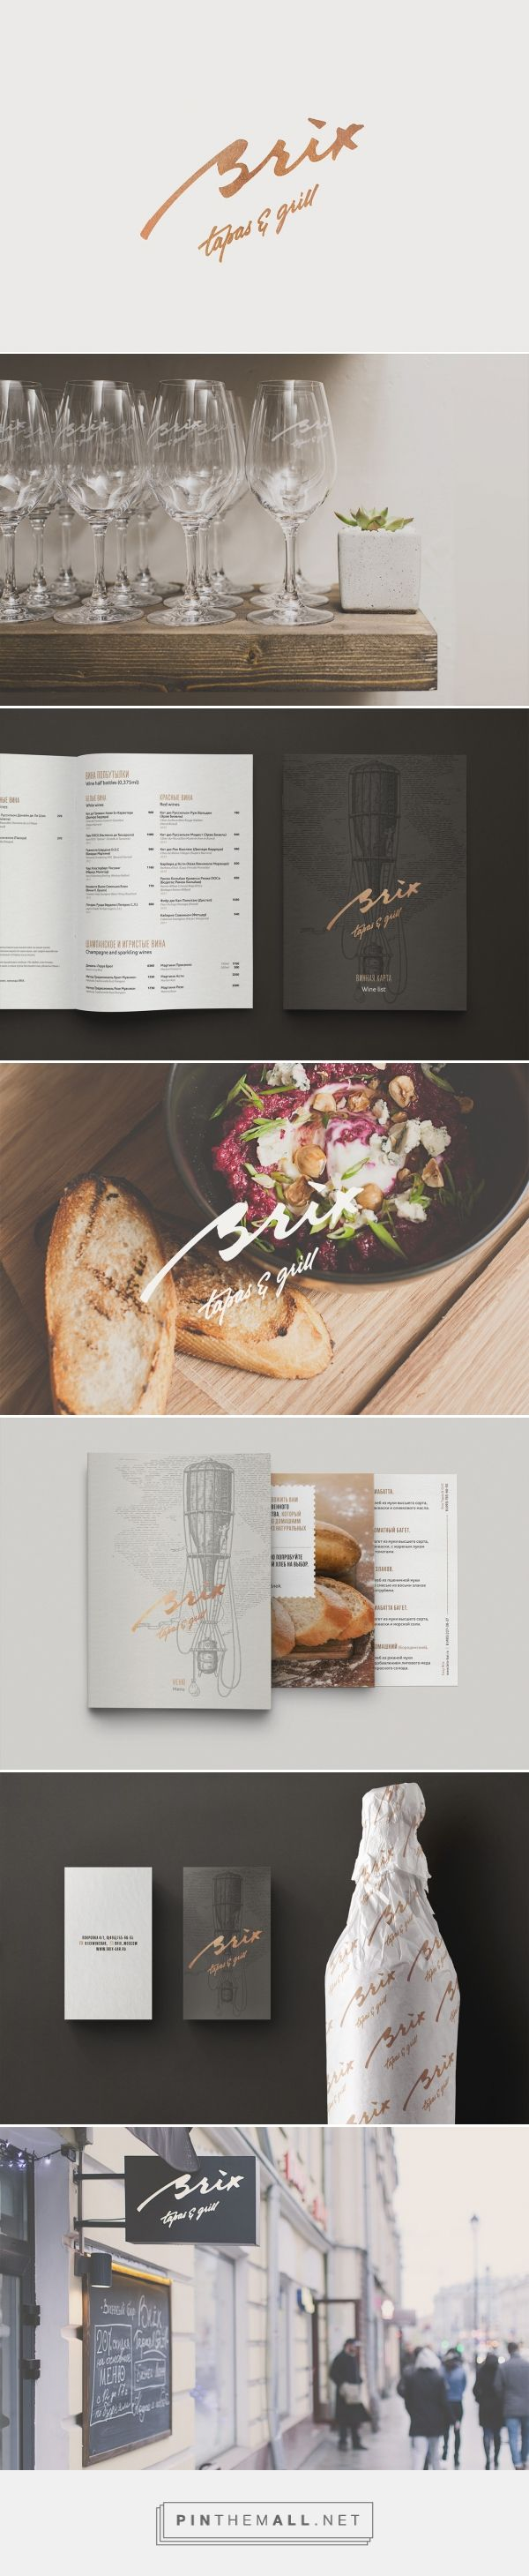 Brix Tapas Grill Branding by The Nineteen   Fivestar Branding Agency – Design and Branding Agency & Inspiration Gallery